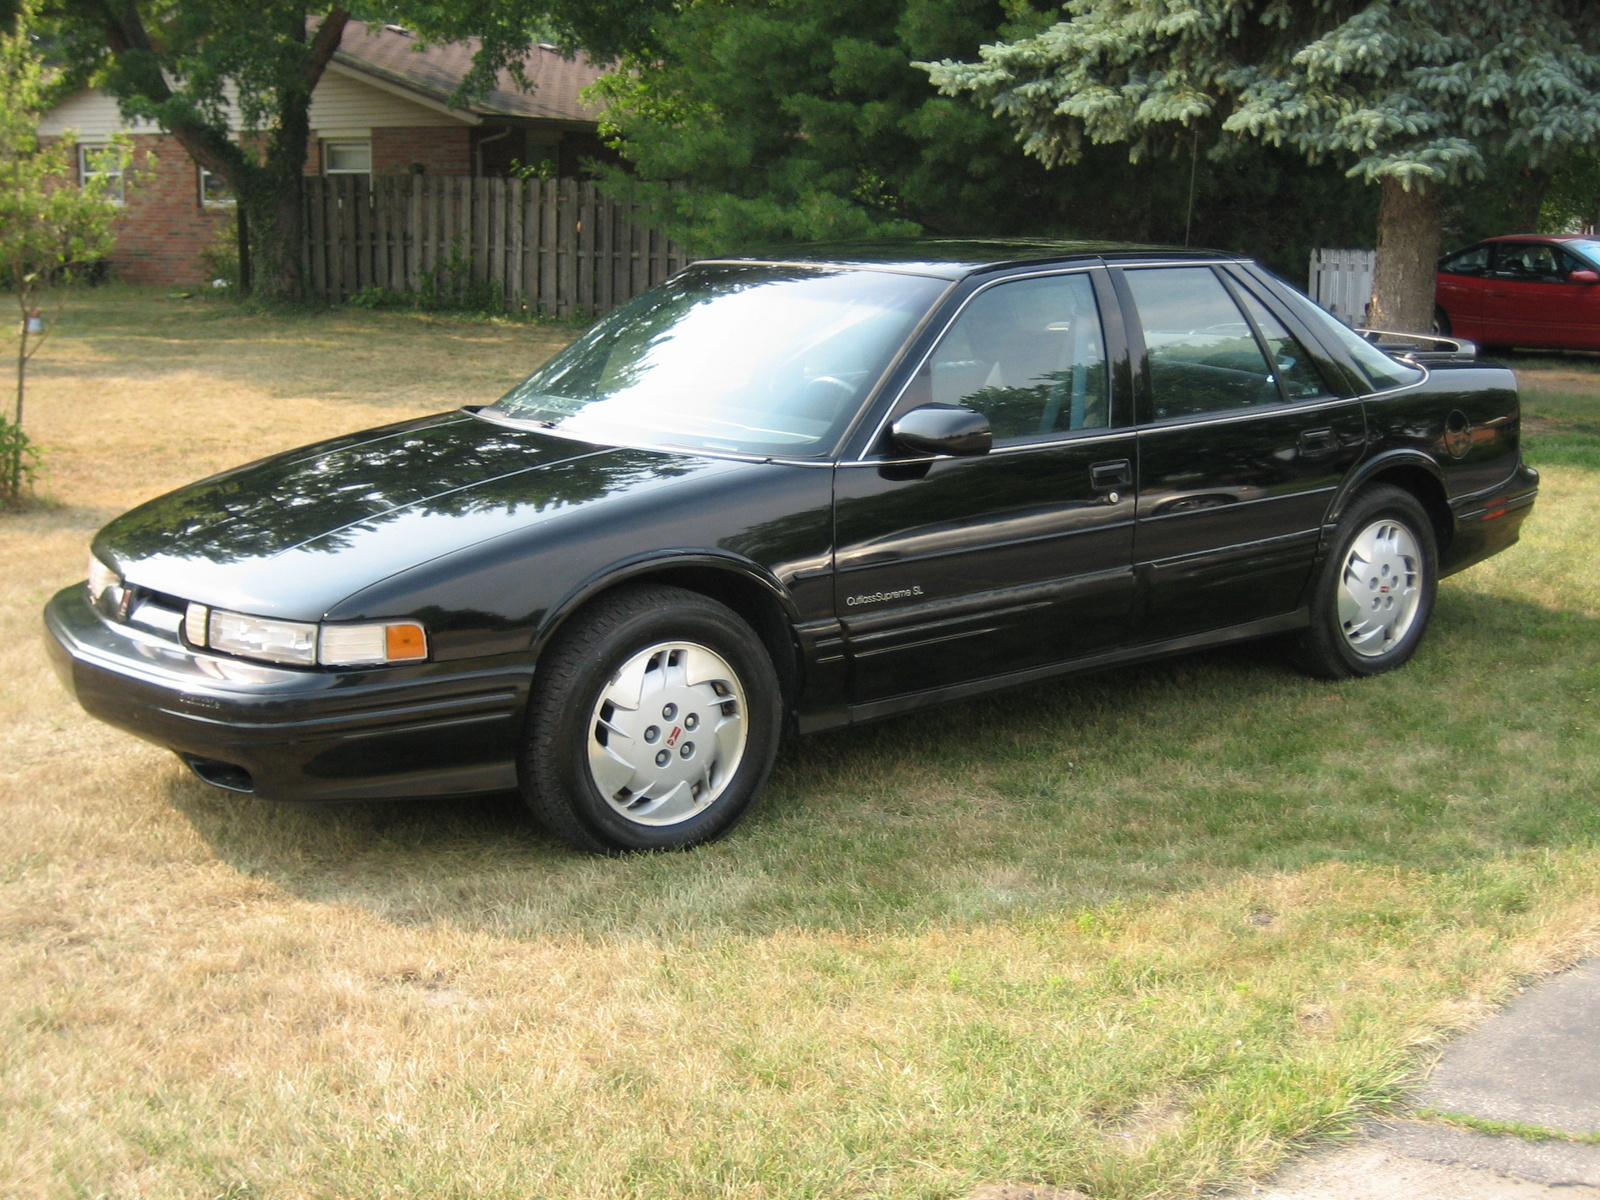 1992 Oldsmobile Cutlass Supreme 4 Dr S Sedan picture